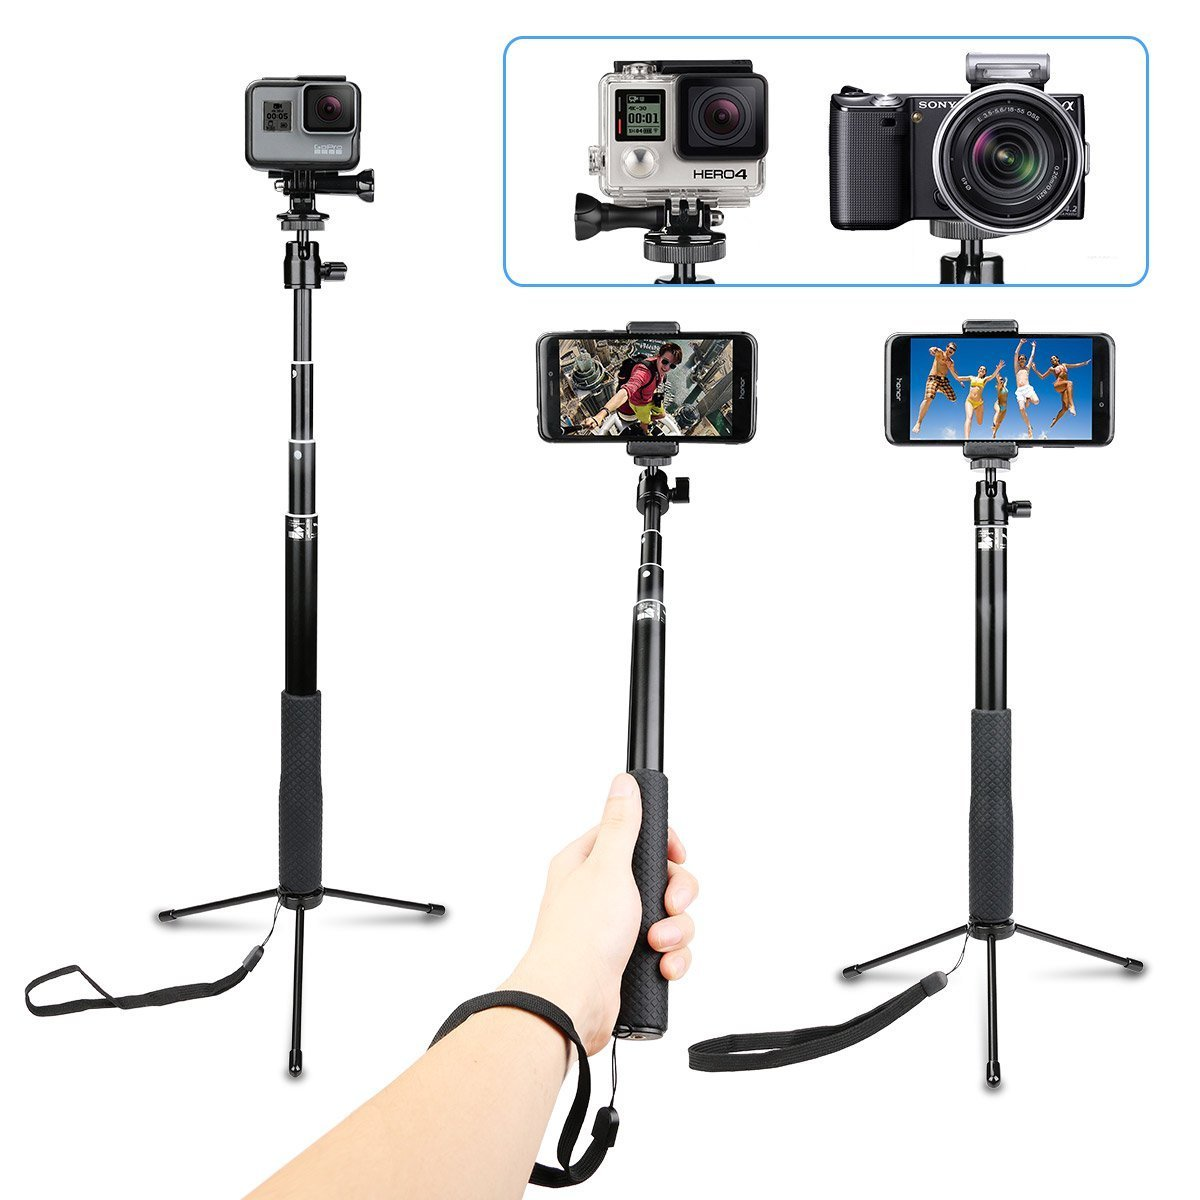 AnKooK Waterproof Extendable Selfie Stick with Universal Mini Tripod Stand for Gopro Hero 6/5/Yi/AKASO EK7000/Brave4/APEMAN/DBPOWER/Campark/Crosstour Sports Action Camera and More(37 inch) SS002 by AnKooK